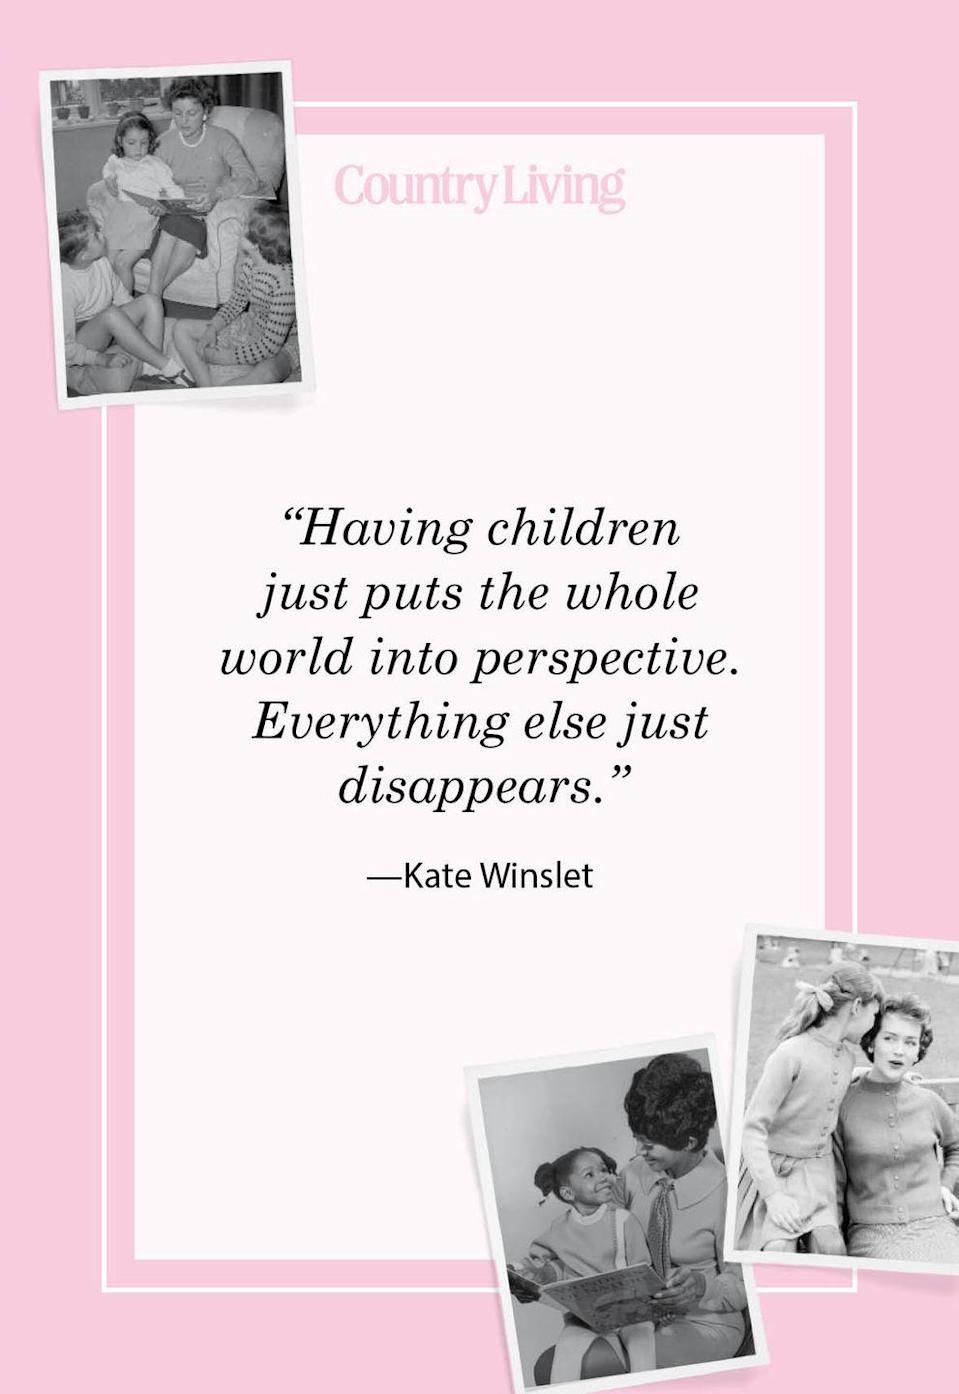 "<p>""Having children just puts the whole world into perspective. Everything else just disappears.""</p>"